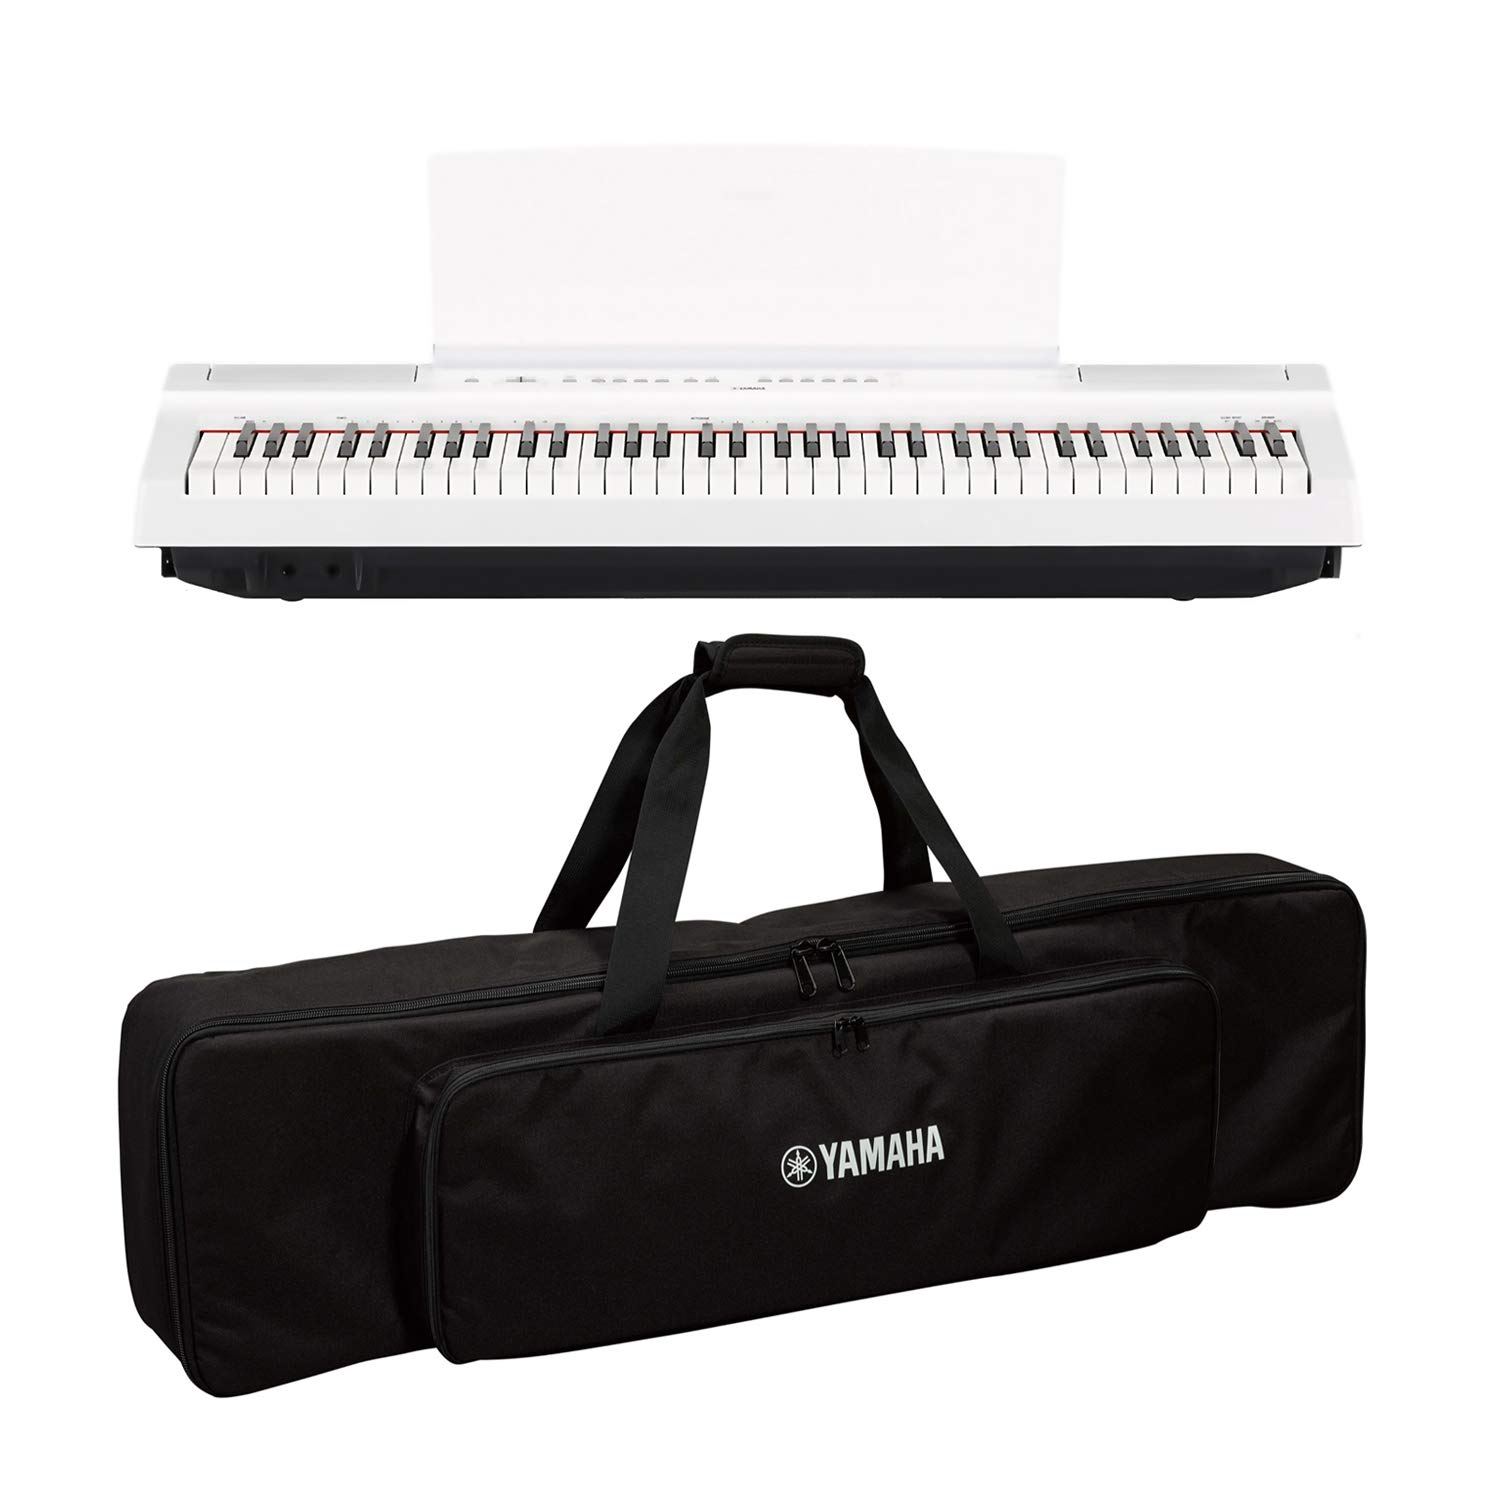 Yamaha P121 73-Key Weighted Action Digital Piano - White with SC-KB750 Soft Case for P-121 by Yamaha Bundle